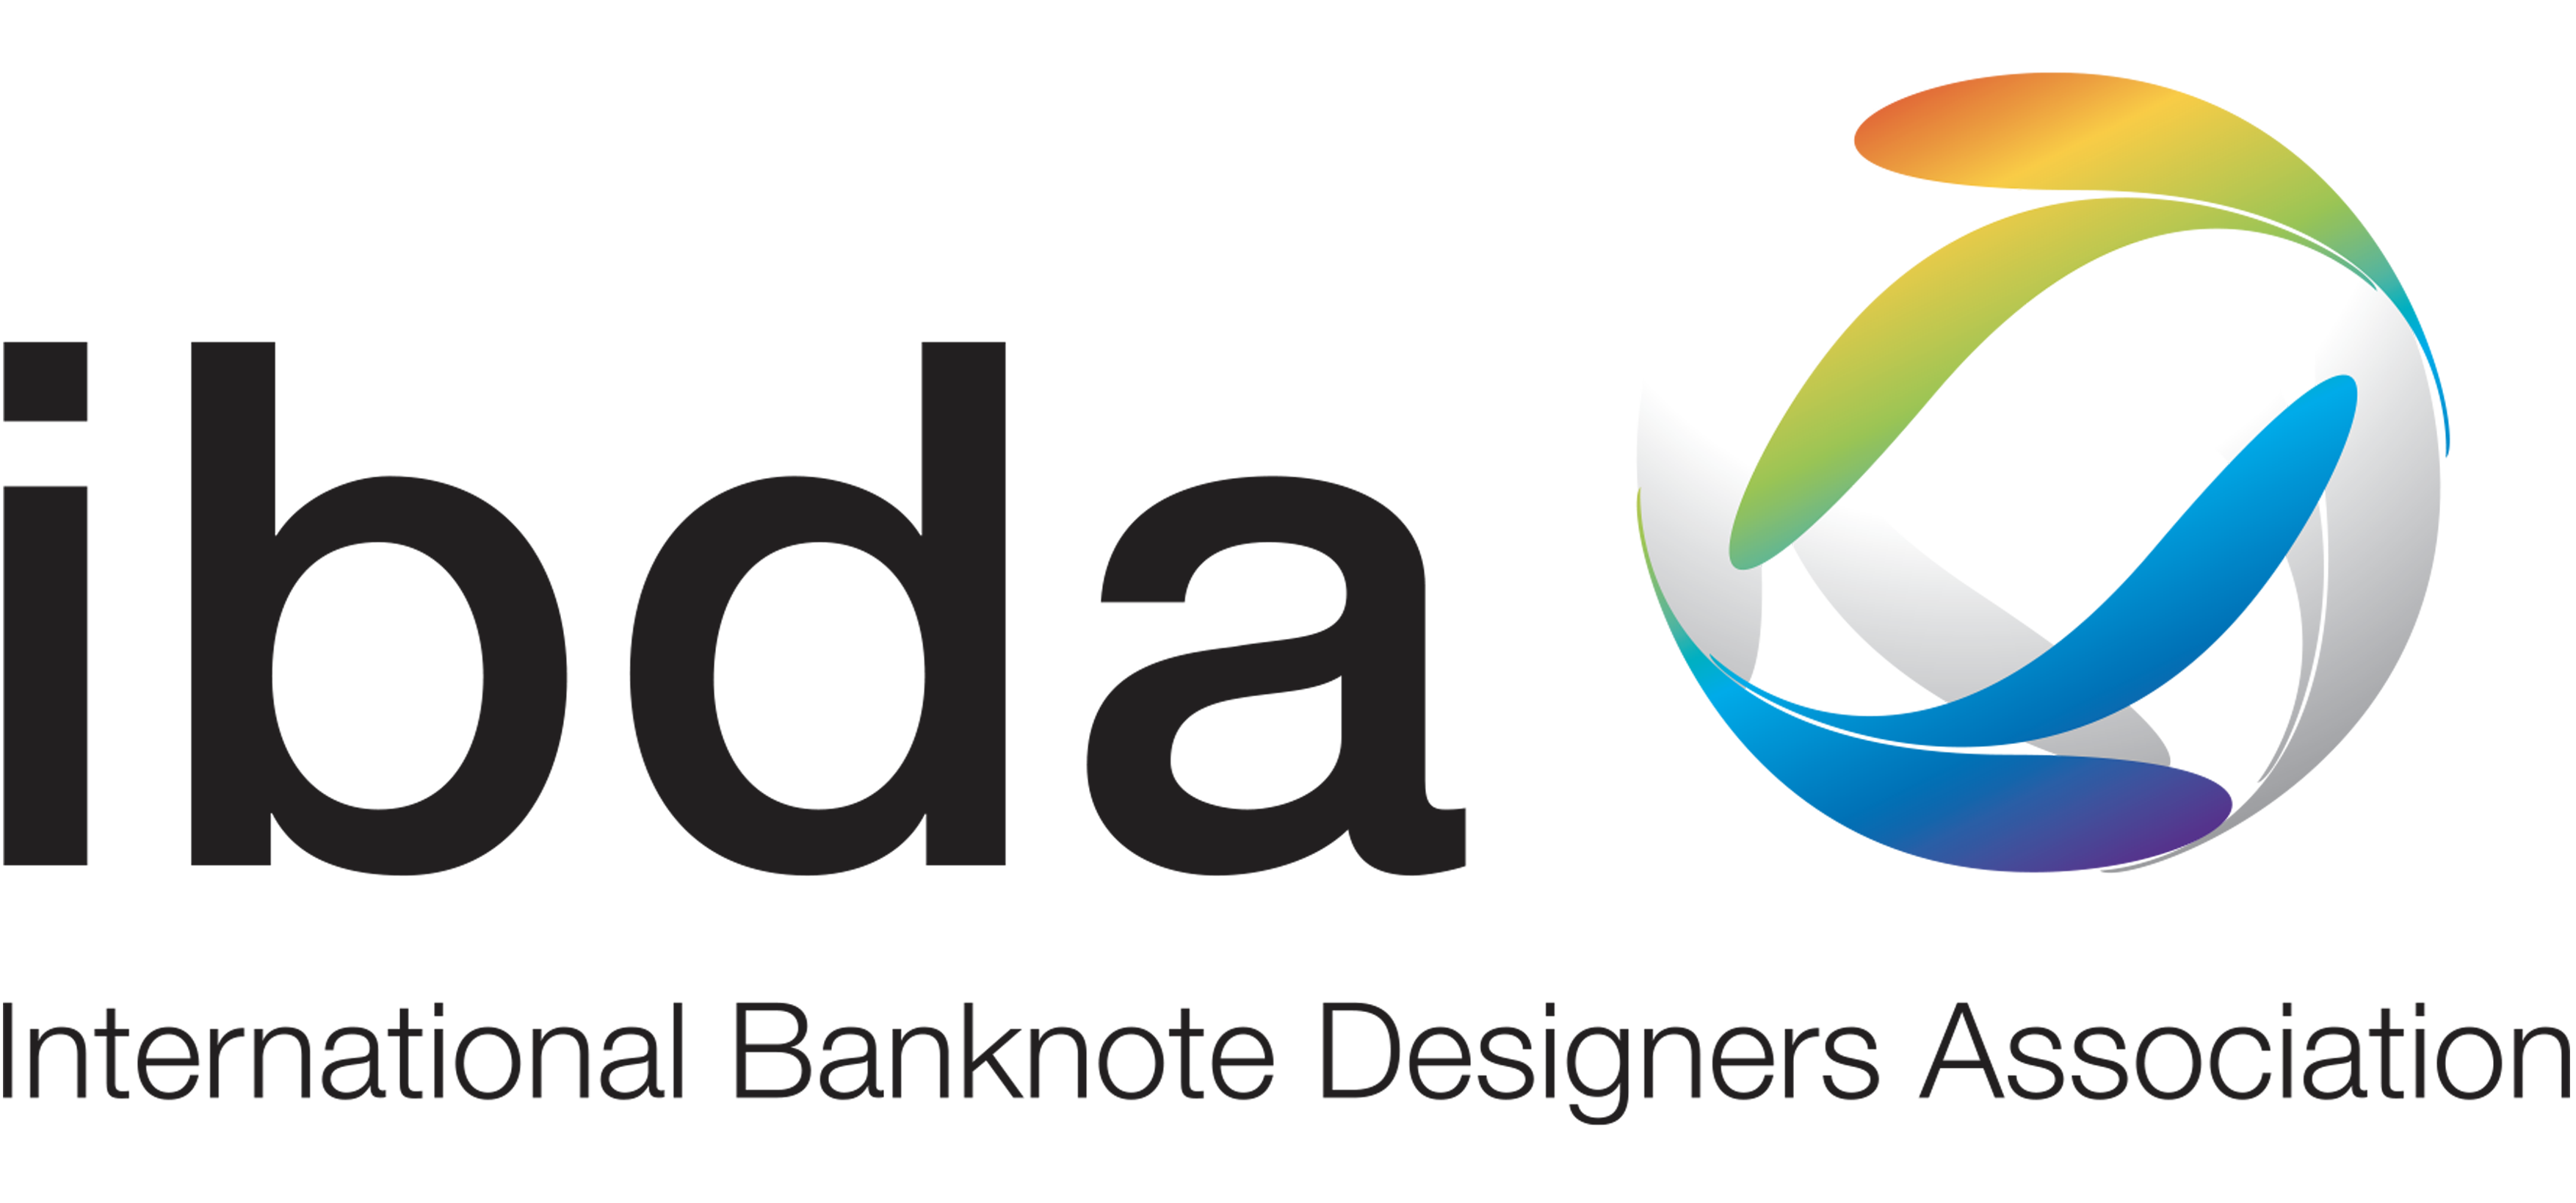 International Banknote Designers Association